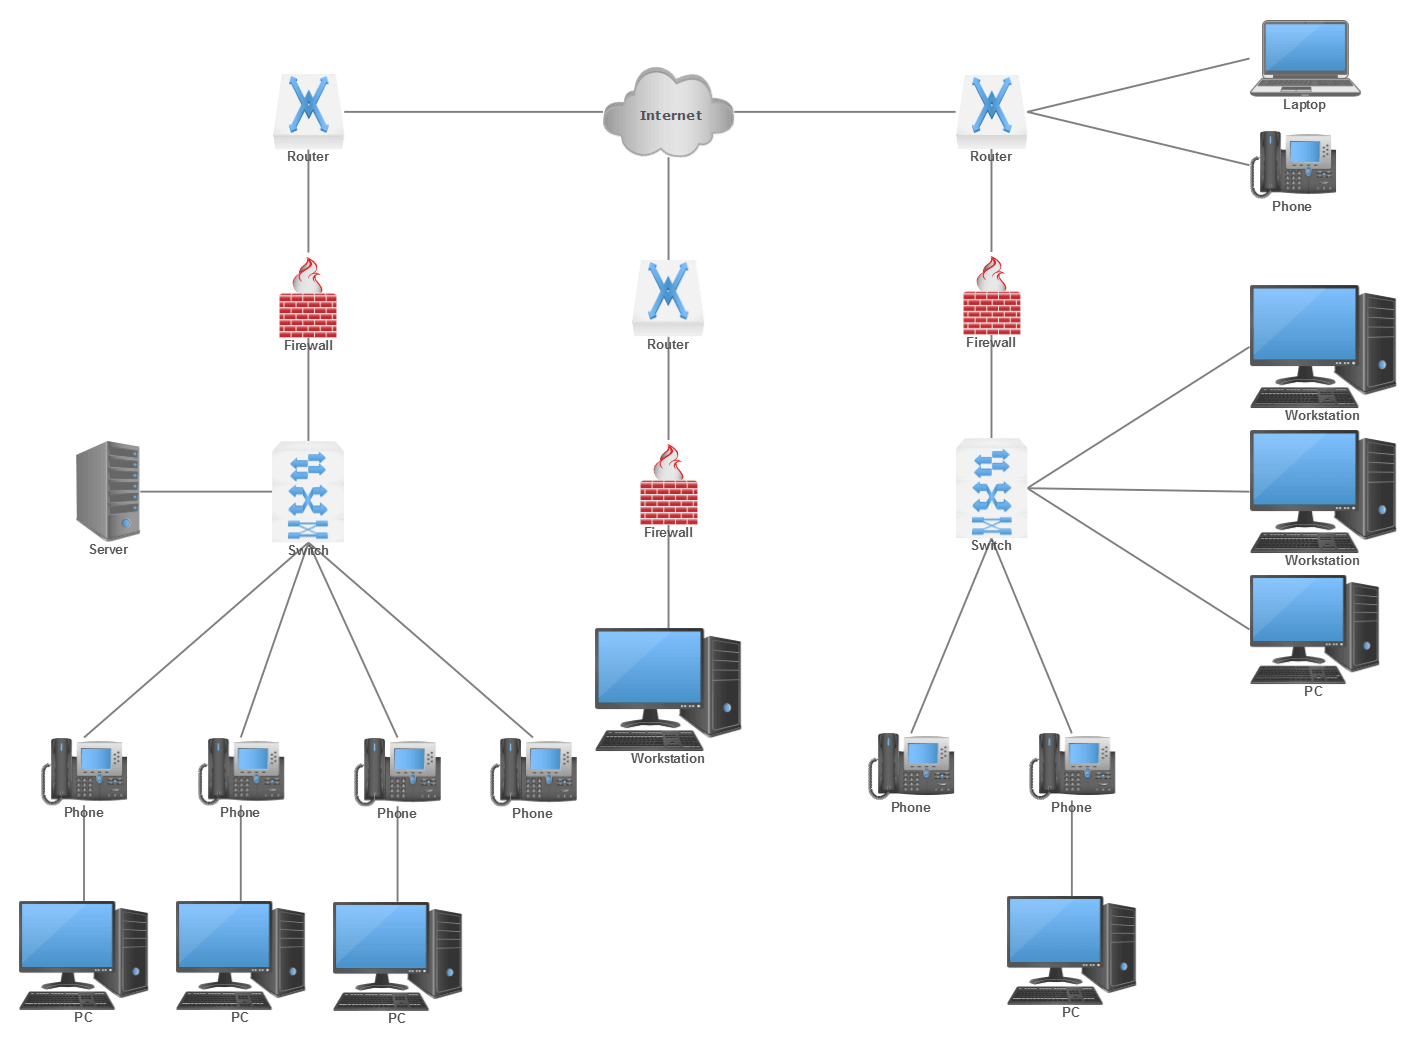 Google drive diagrams basic guide wiring diagram network topology software try it free and make network topology rh smartdraw com google docs diagram google drive uml diagrams ccuart Image collections